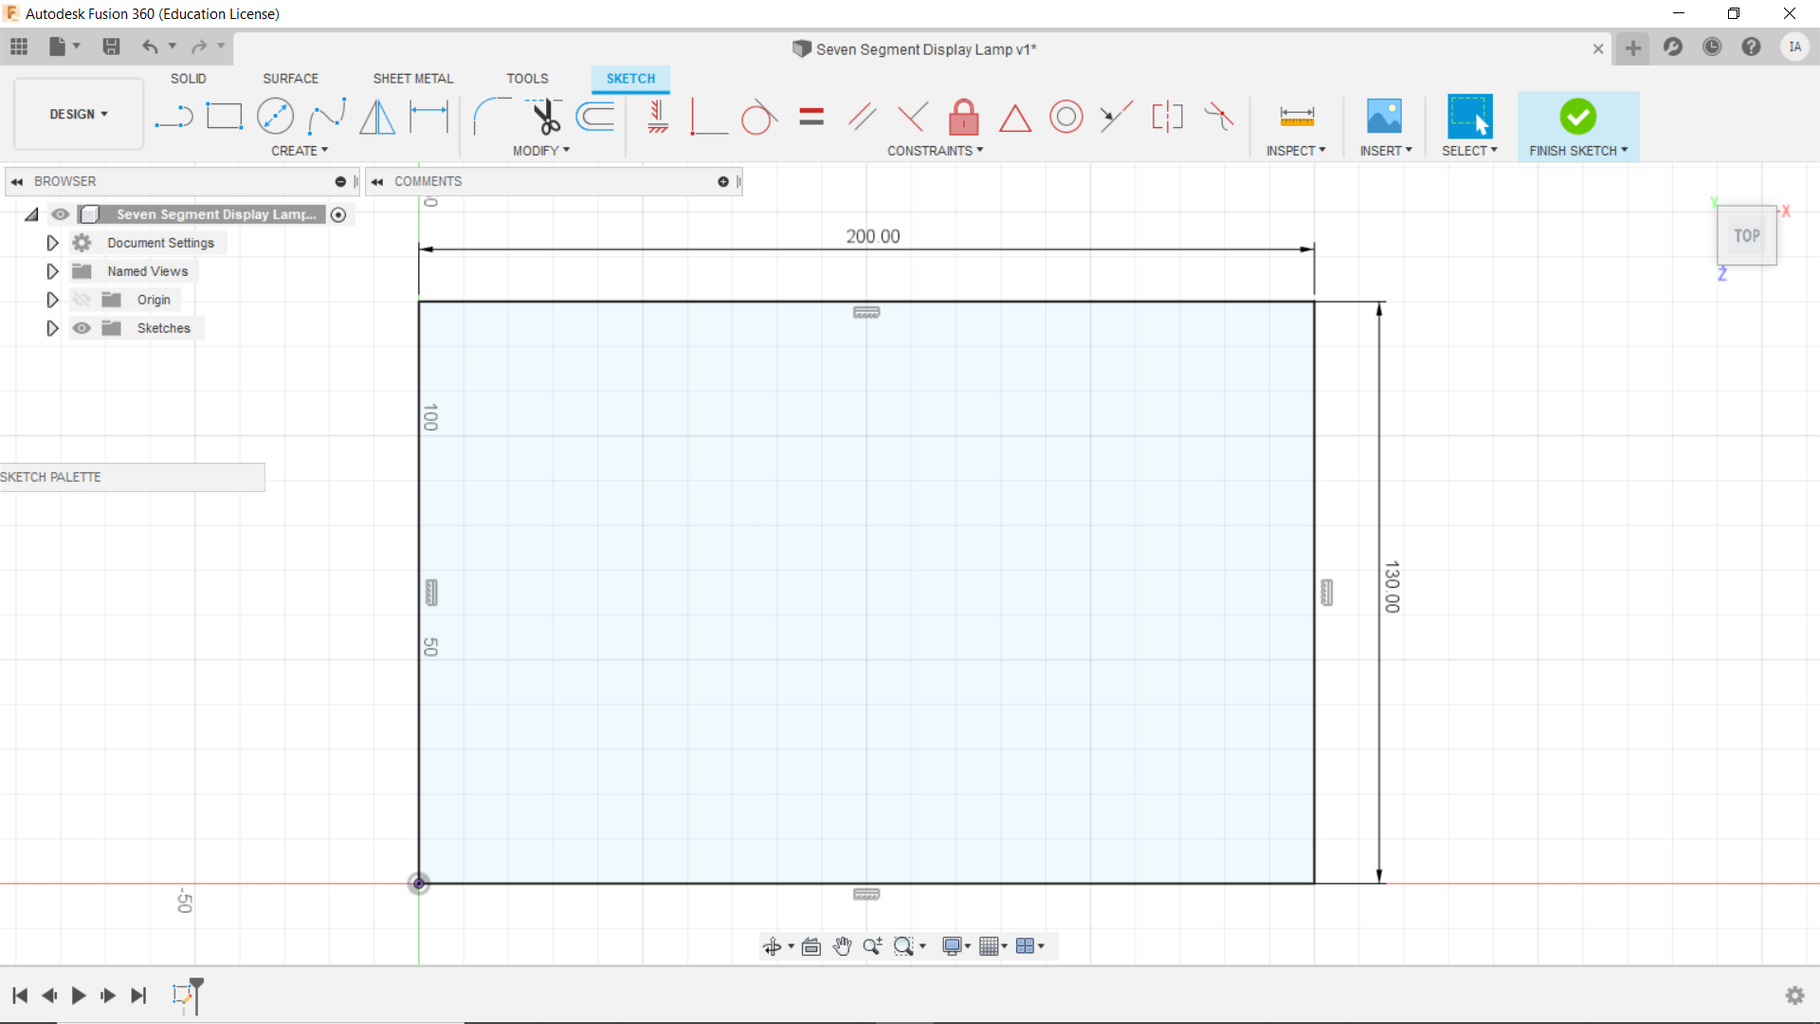 Converting to CAD and Generating the Toolpath for the CNC Router